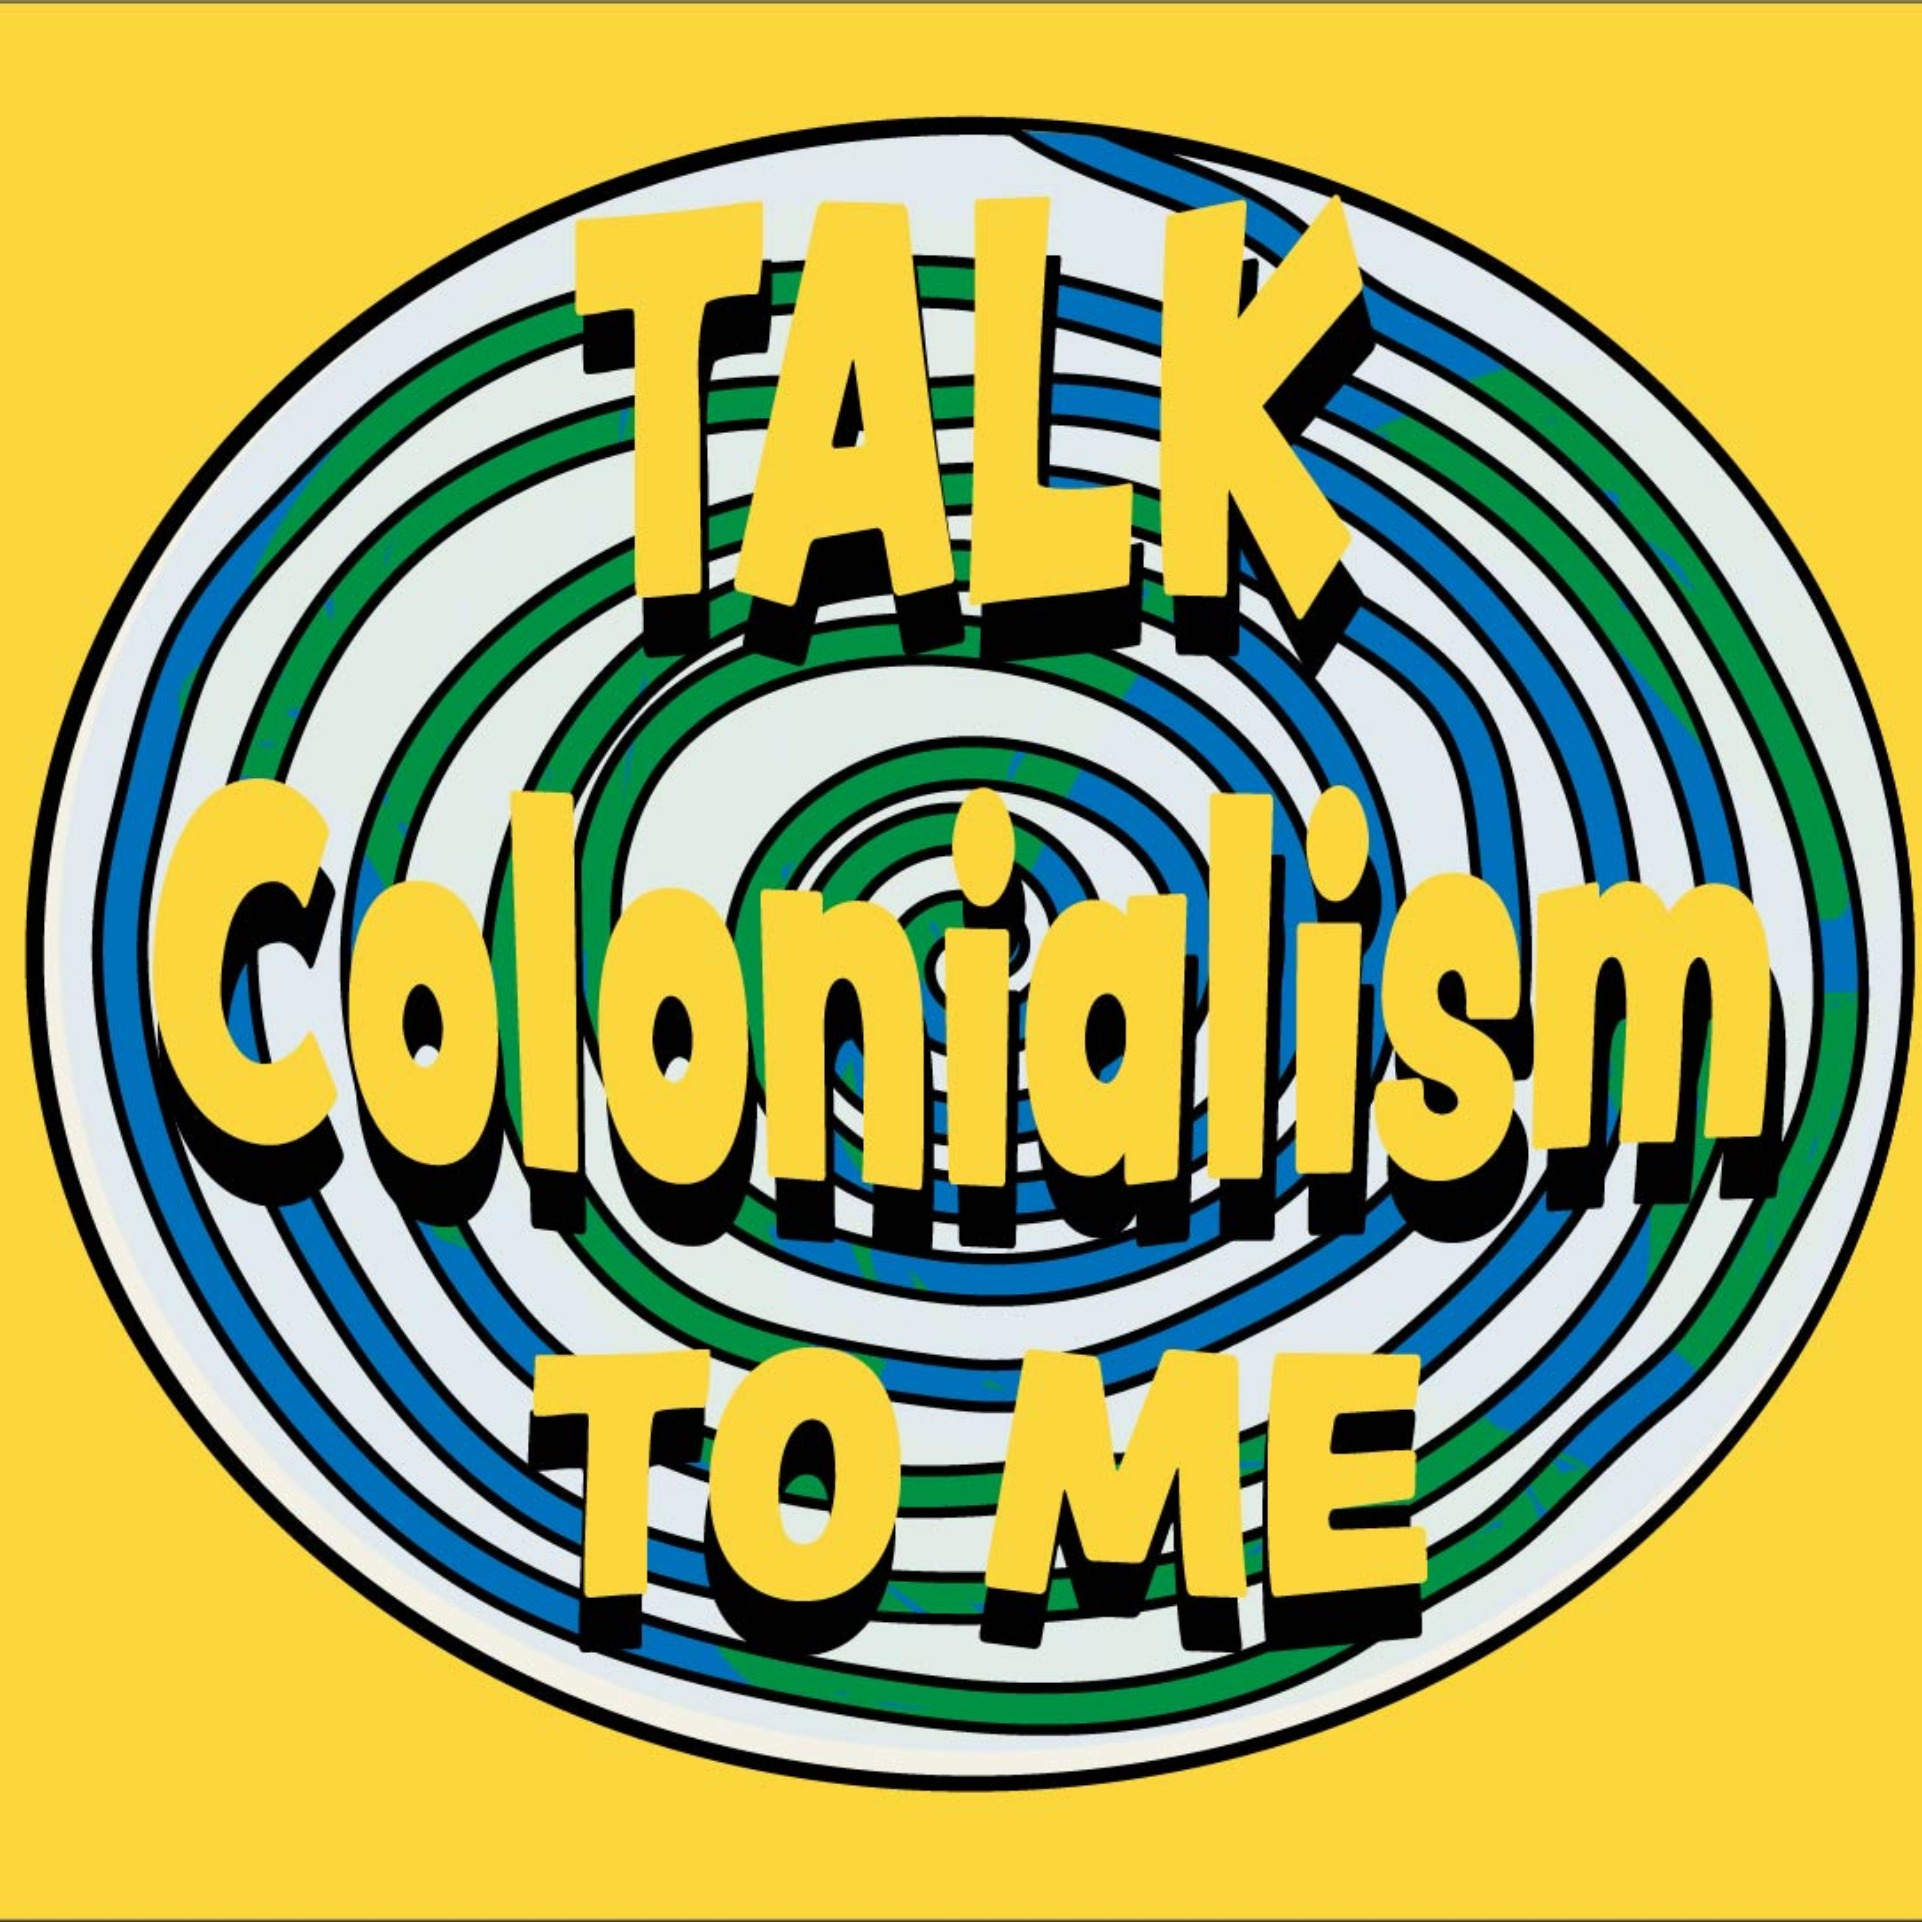 Talk Colonialism to Me